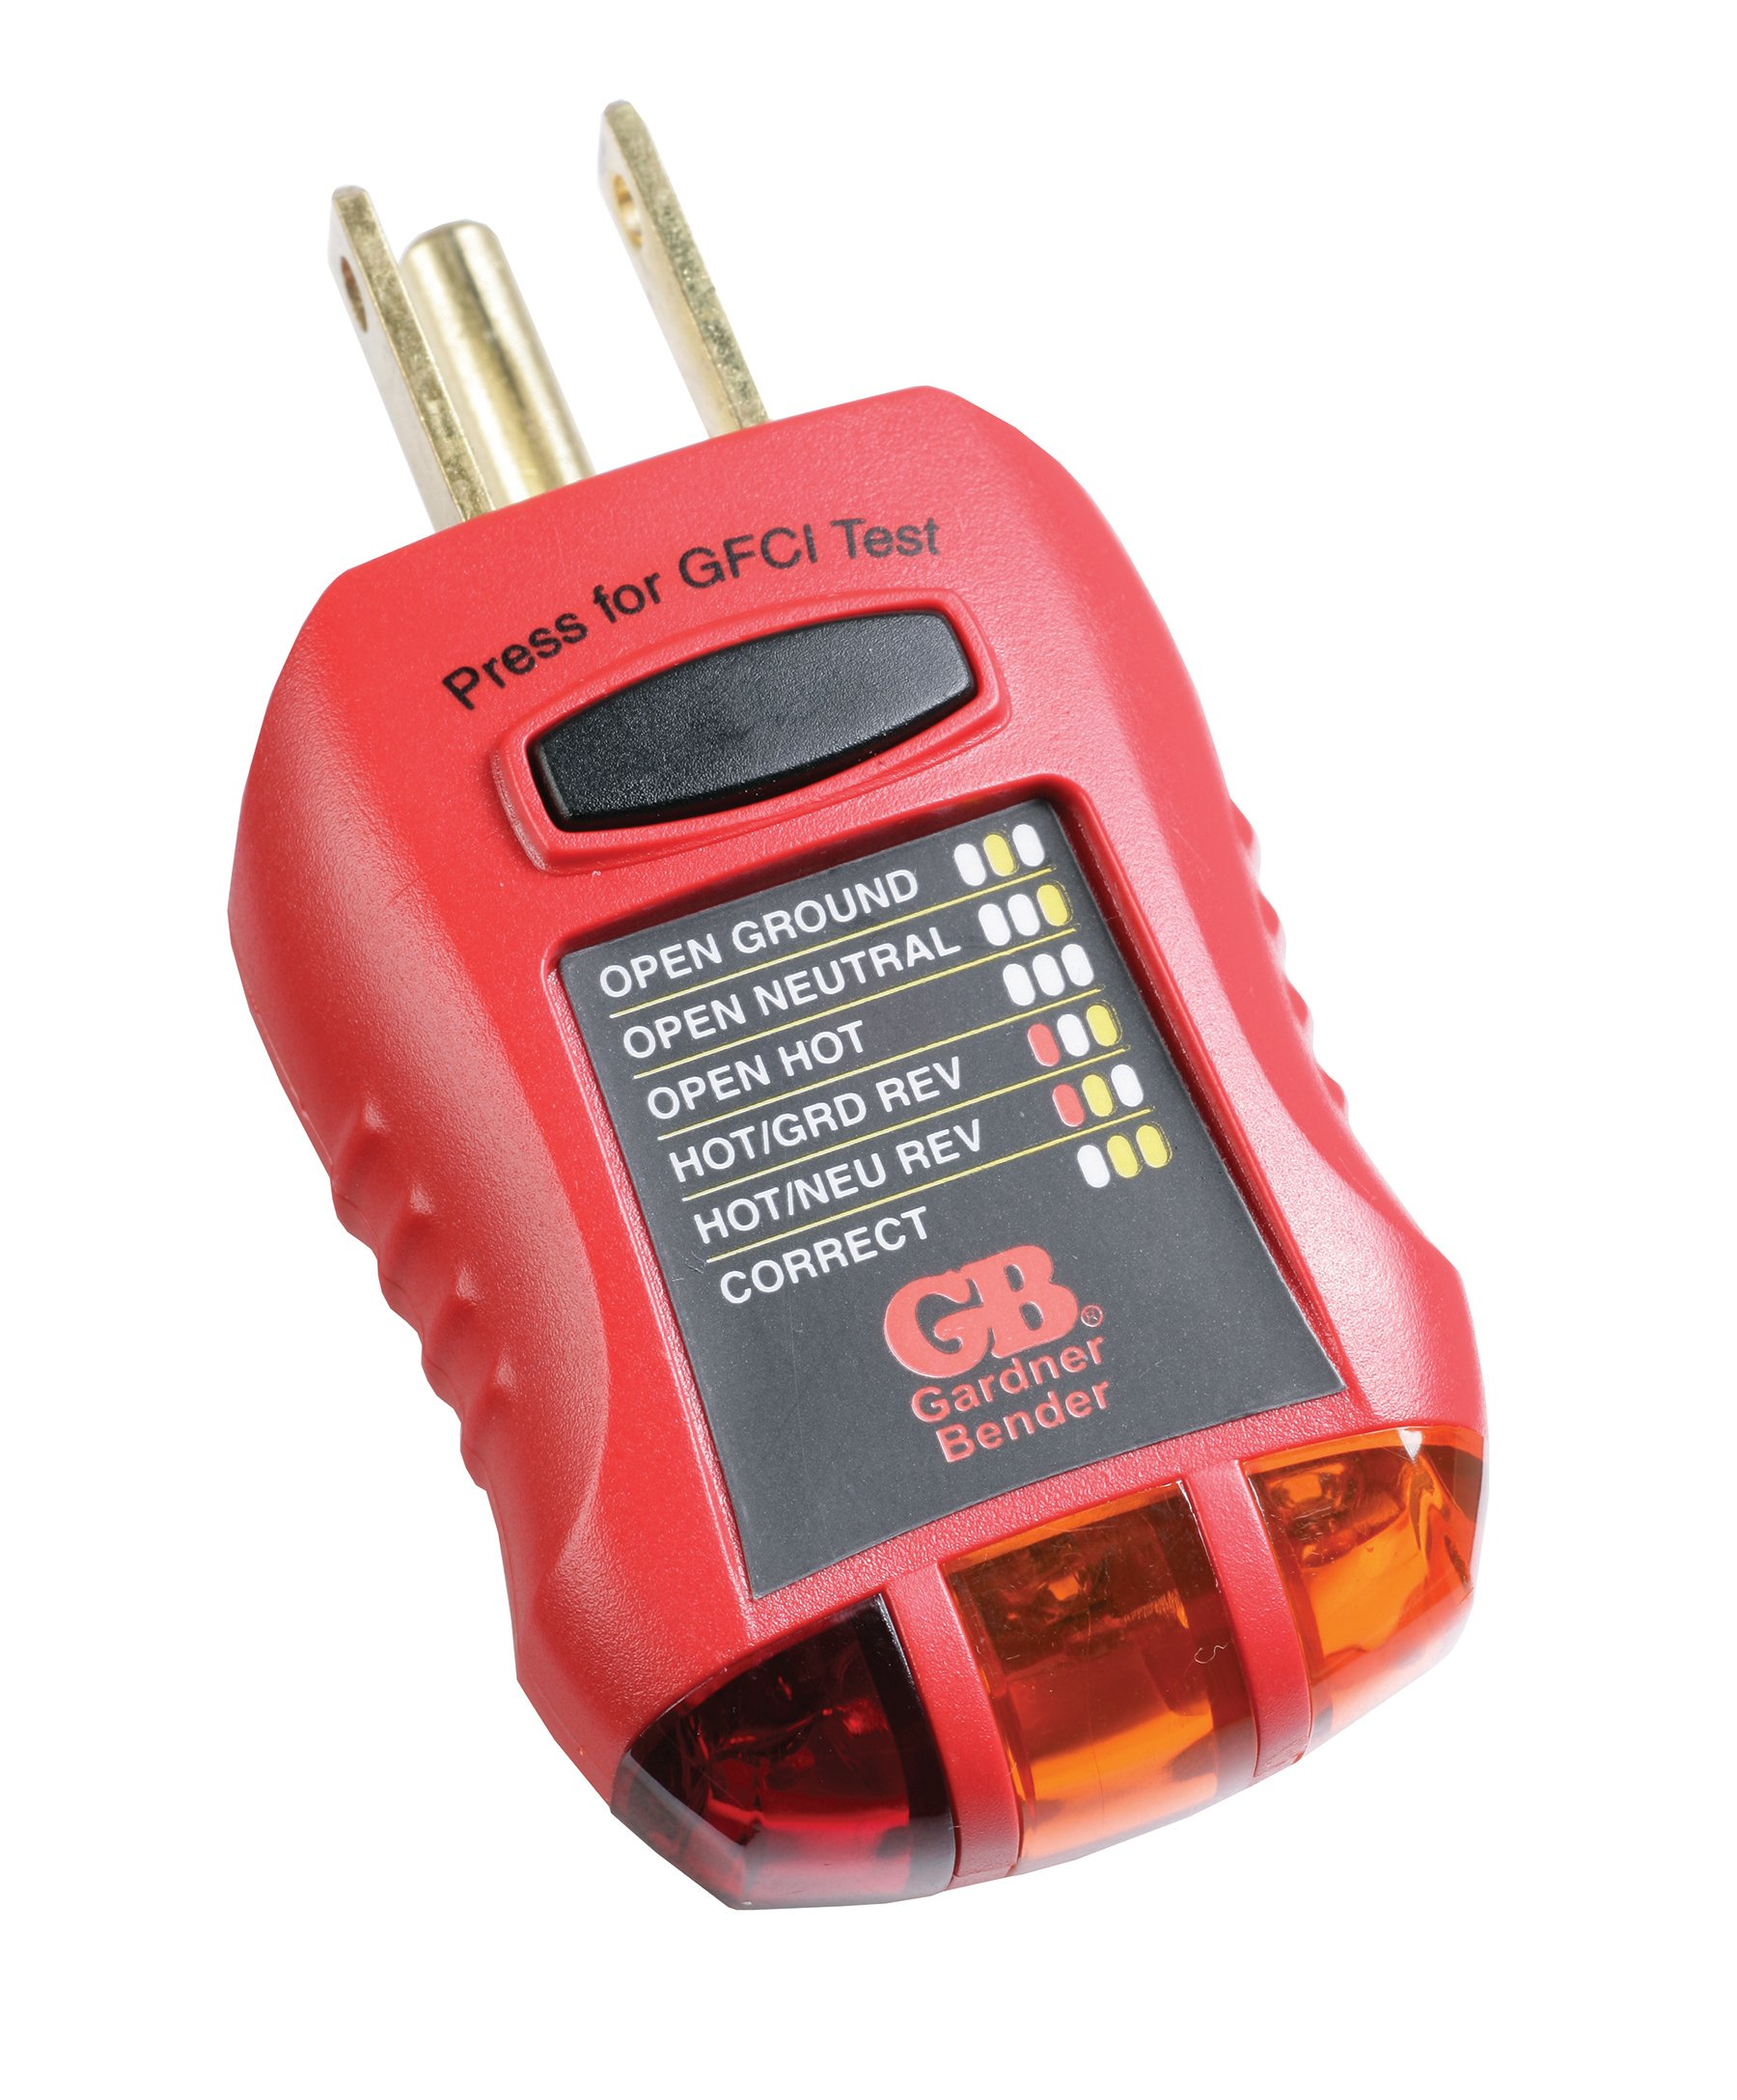 Should I Use A Gfci Or Afci Circuit Breaker With Knob And Tube Wiring Best Rated In Testers Helpful Customer Reviews Gardner Bender Gfi 3501 Ground Fault Receptacle Tester Analyzer 110 125v